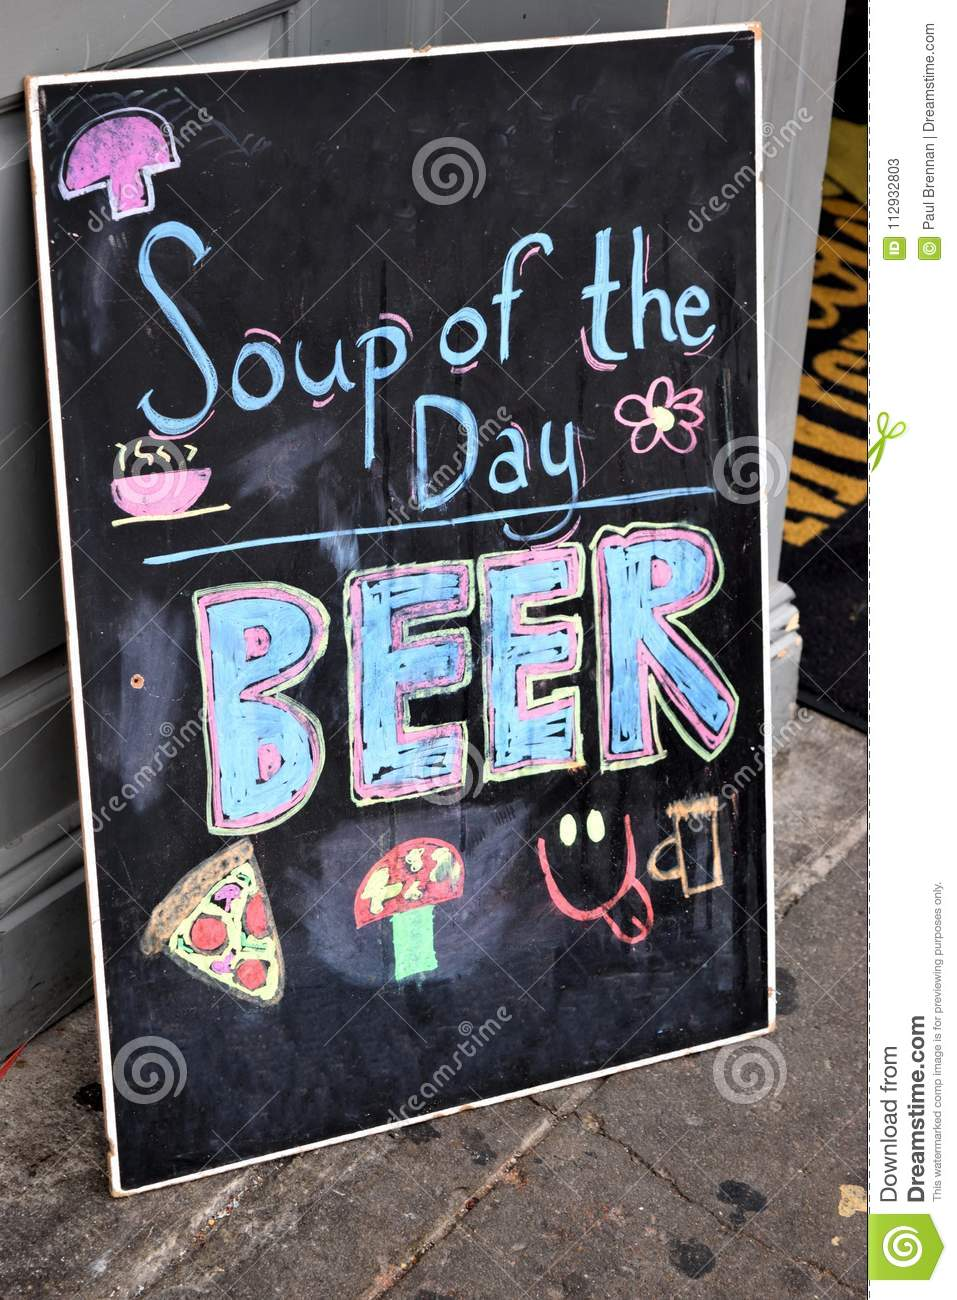 Soup of day is beer